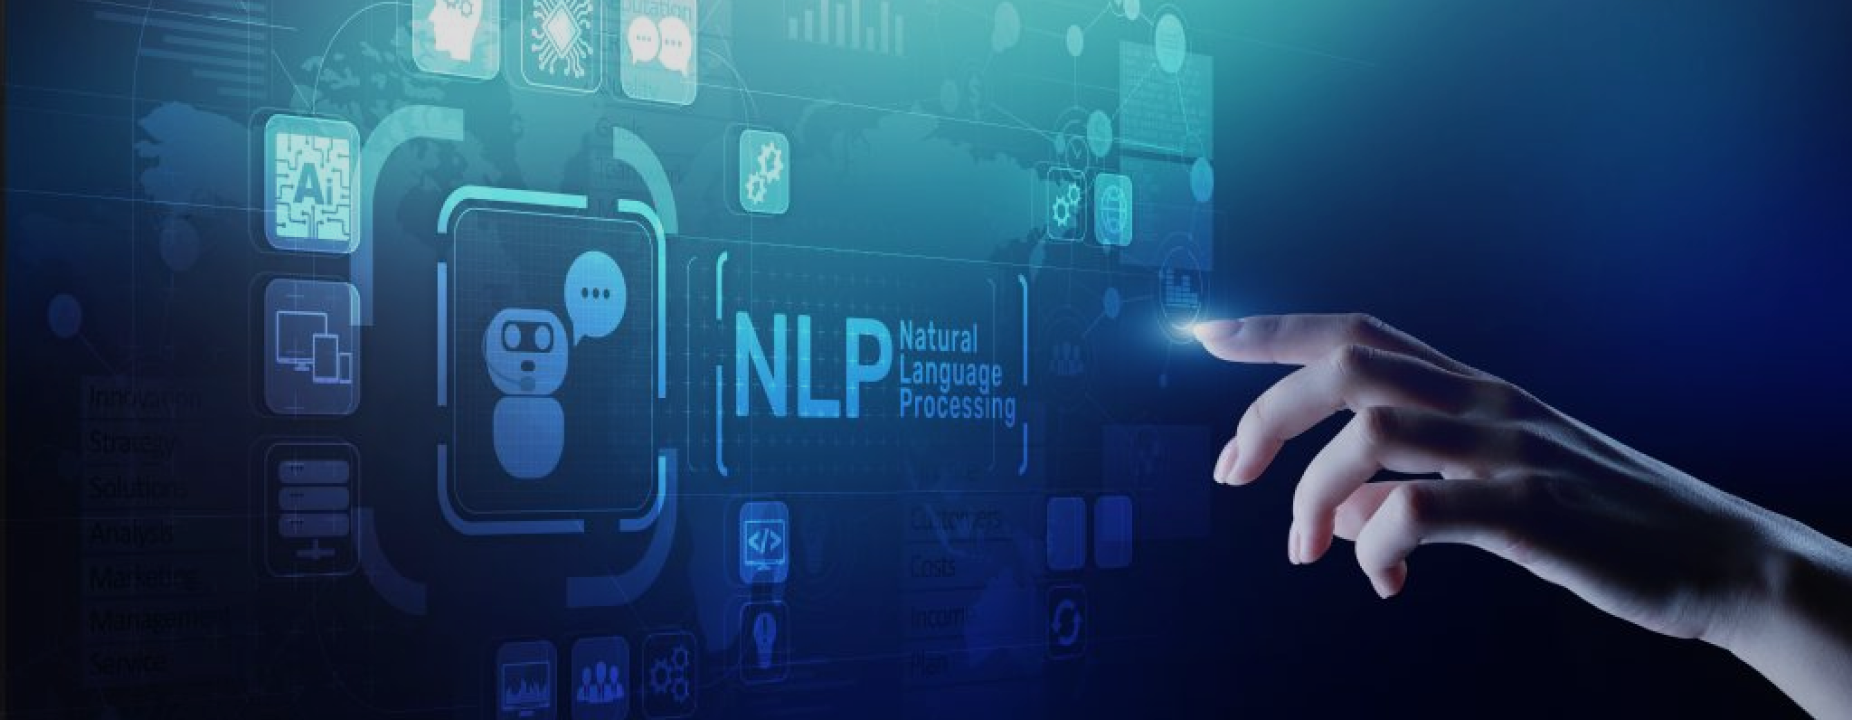 NLP trends for 2021